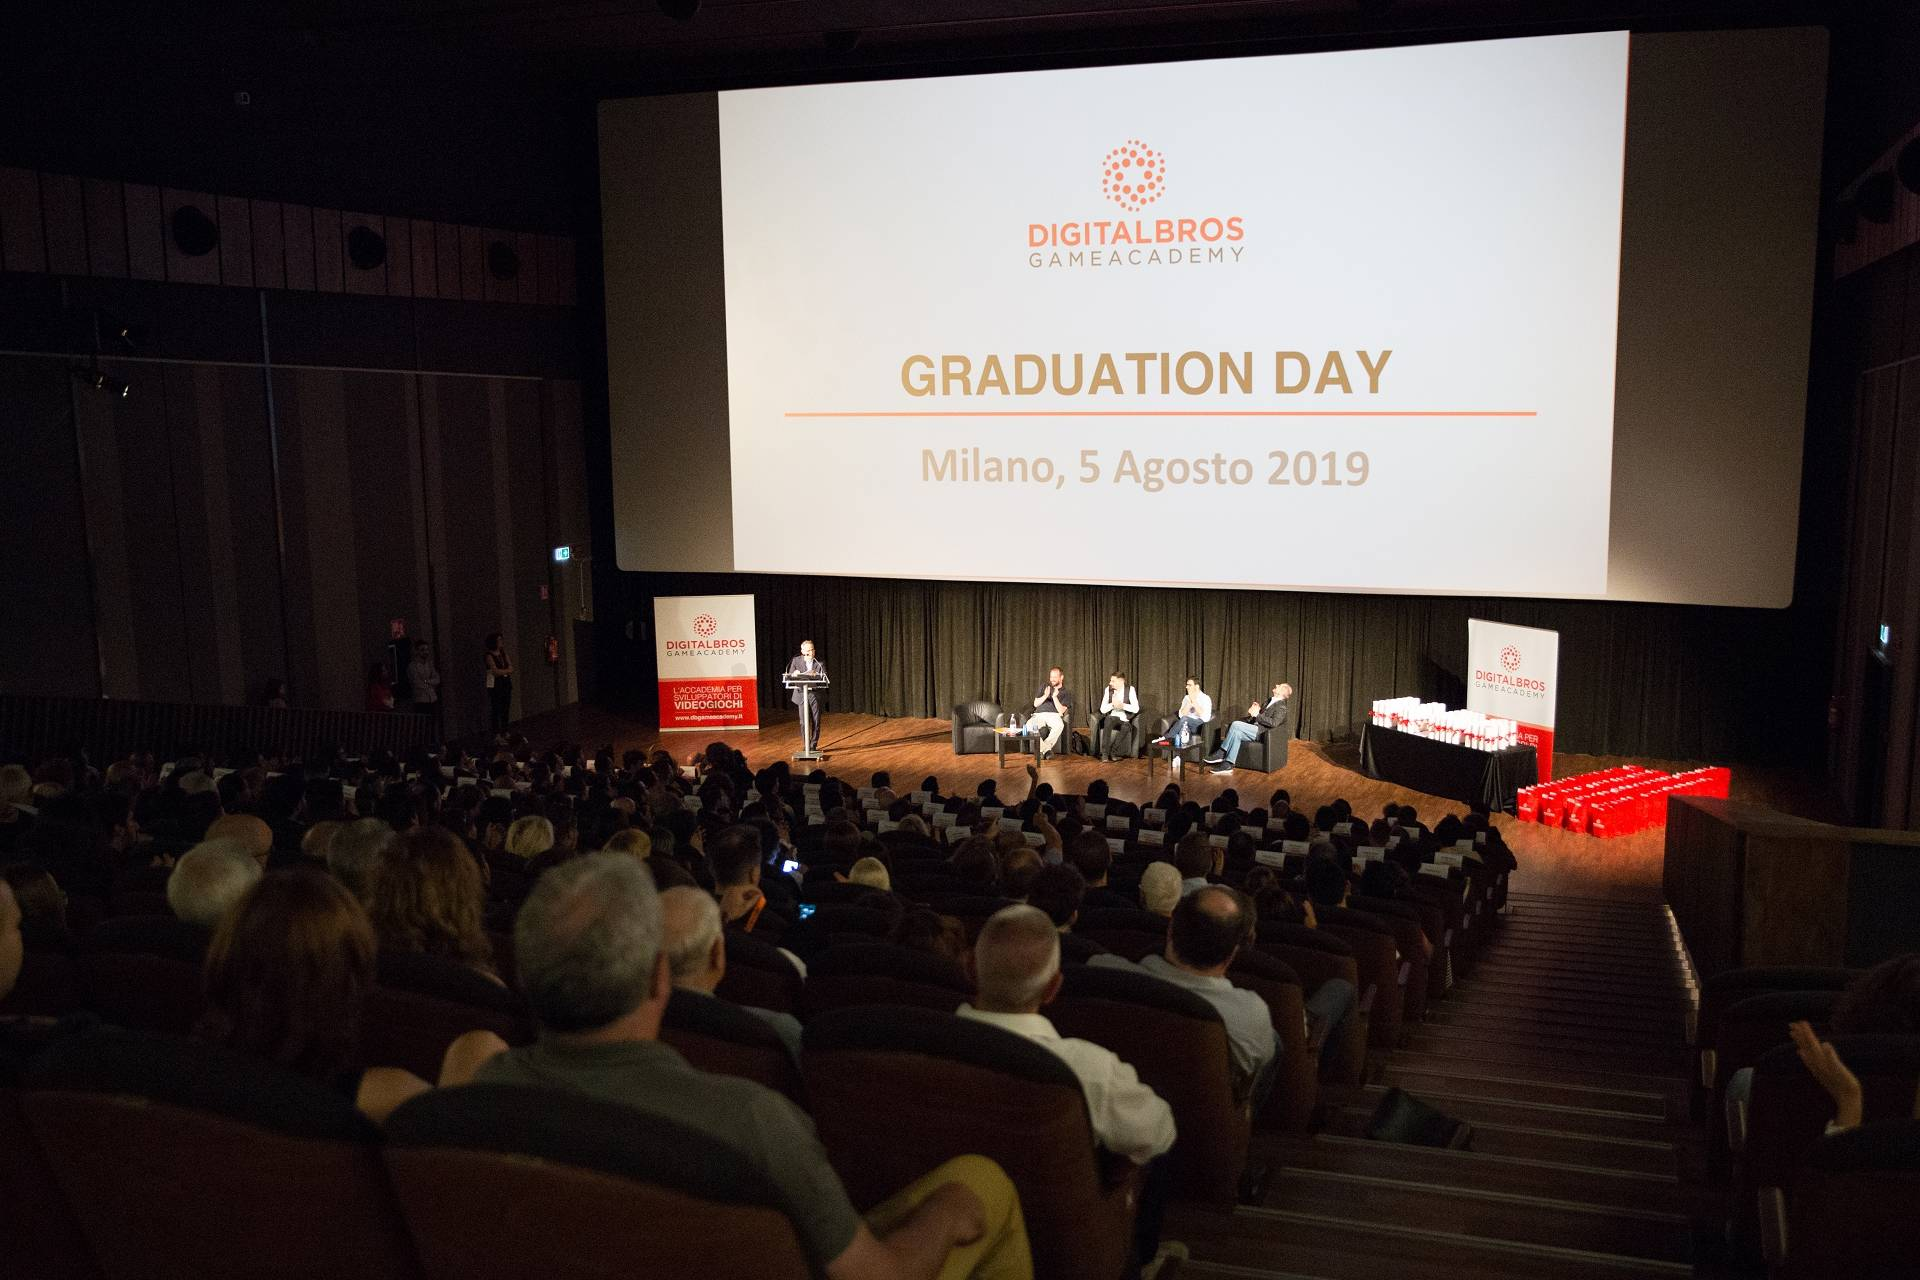 Digital Bros Game Academy cerimonia graduation day agosto 2019